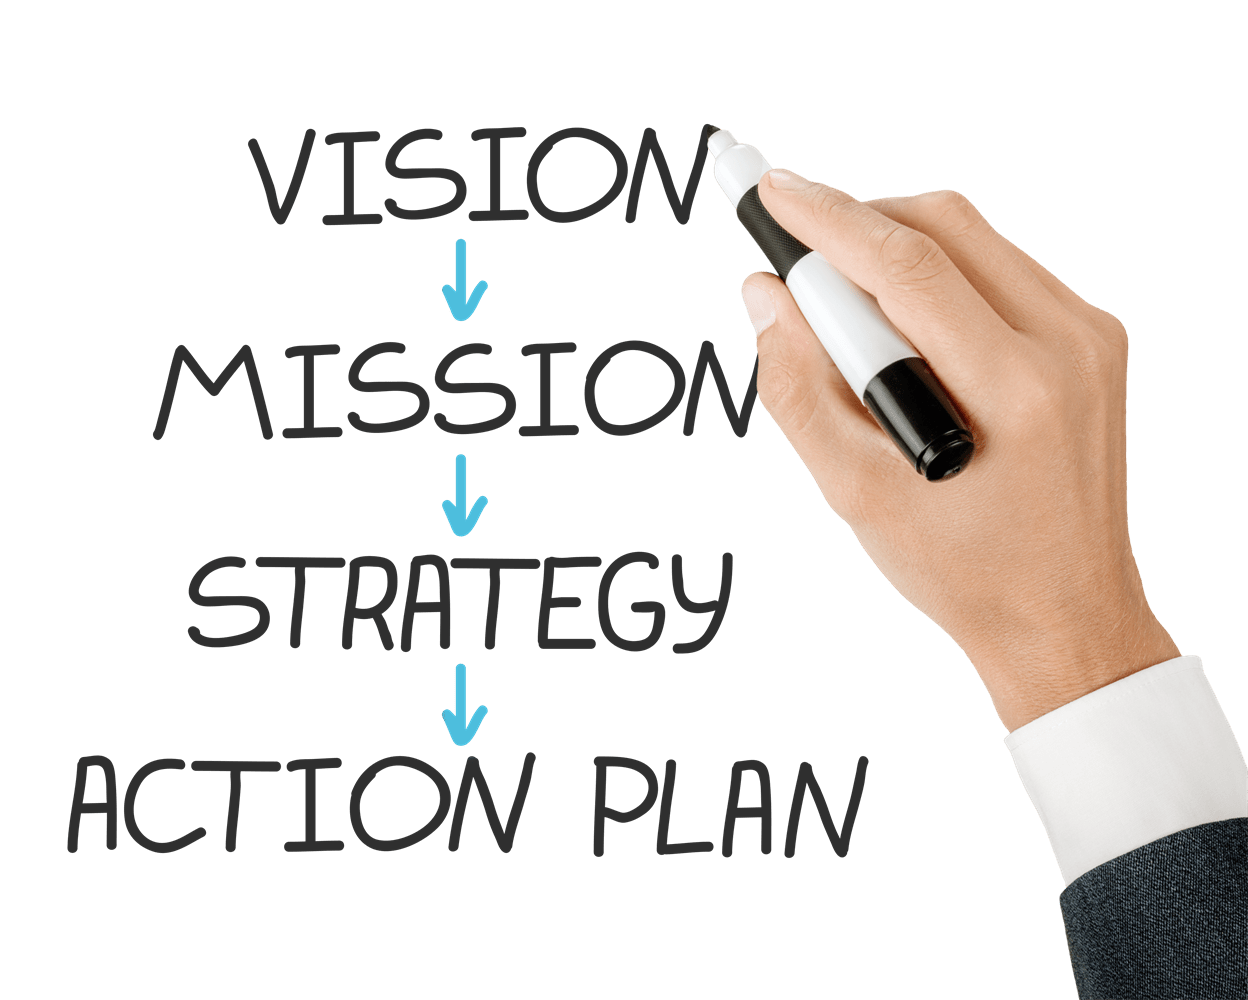 why is strategy so important for Strategic planning starts with defining a company mission a mission is important to an organization because it synthesizes and distills the overarching idea linking its practical strategies, enabling management and employees to align the specifics of their actions and decisions with a clearly defined vision and direction.